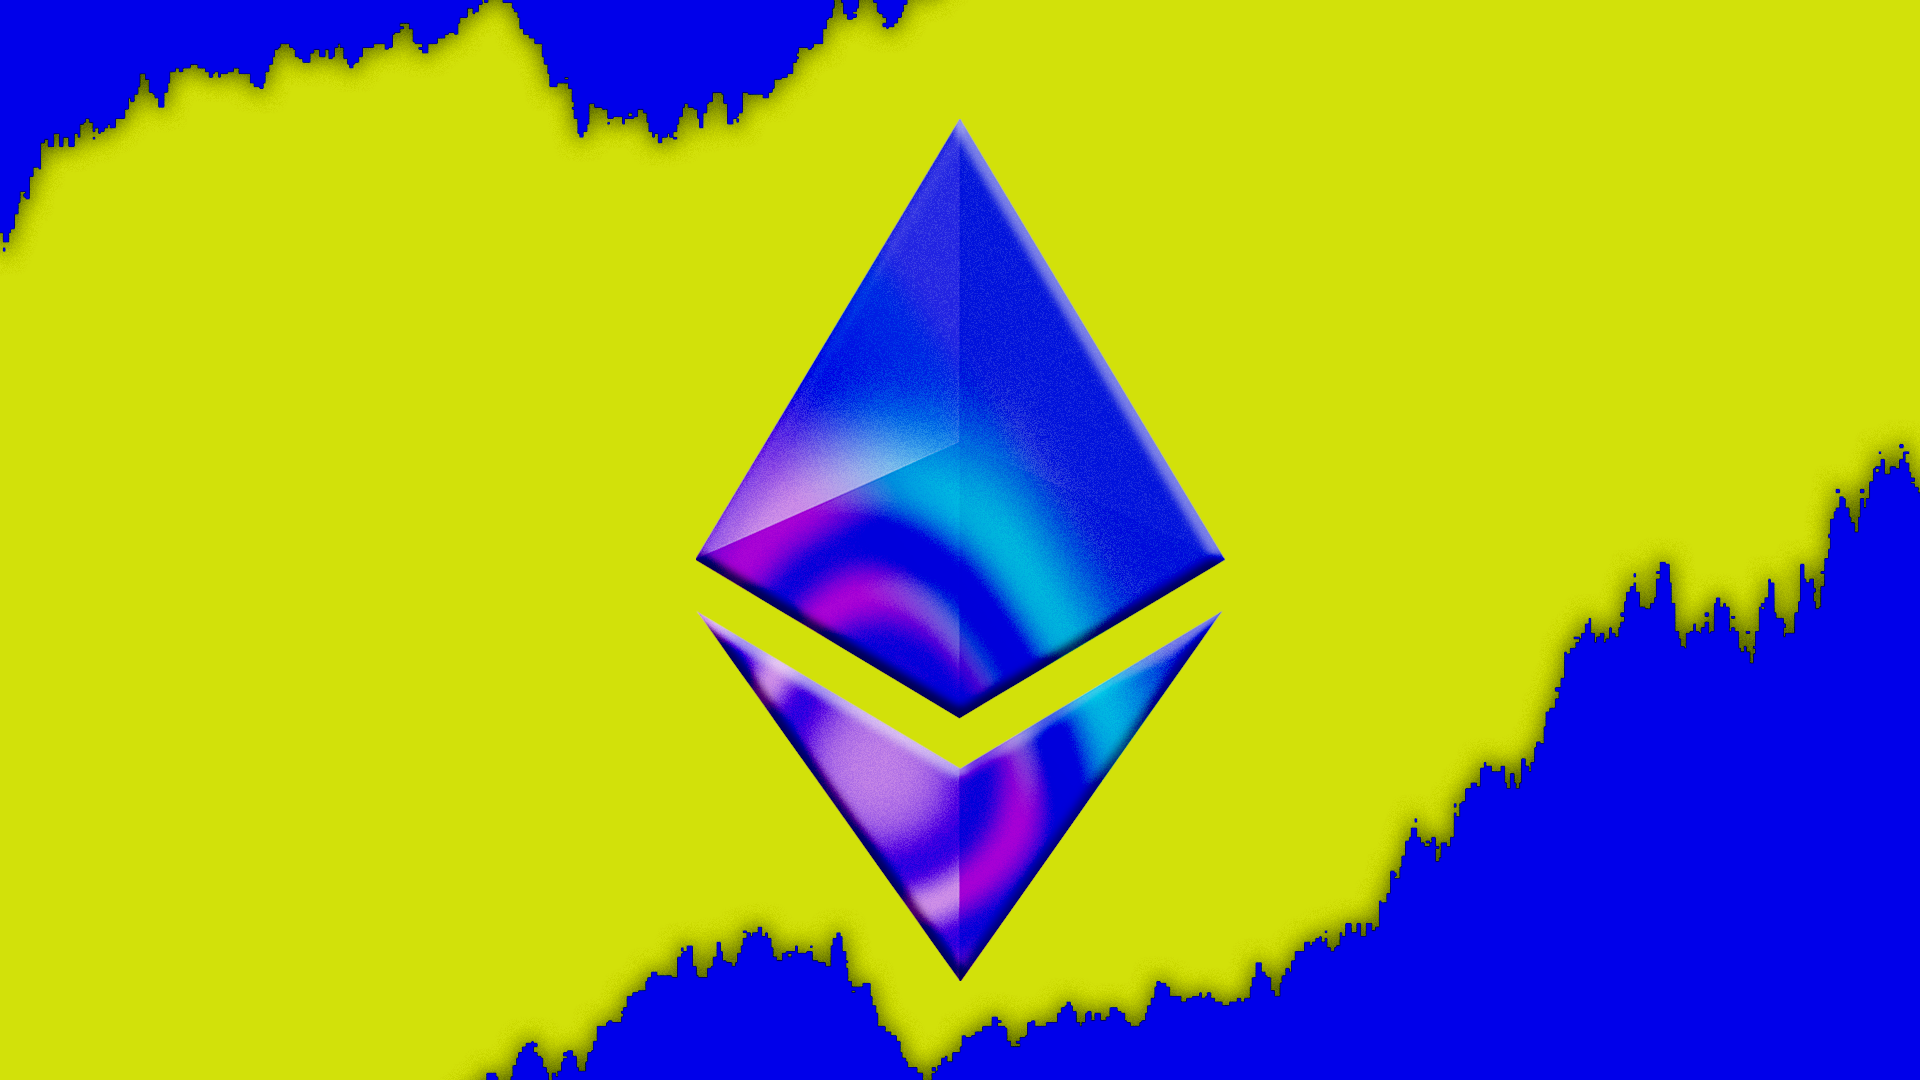 Ethereum mining's monthly revenue reaches all time high over $1 billion in February